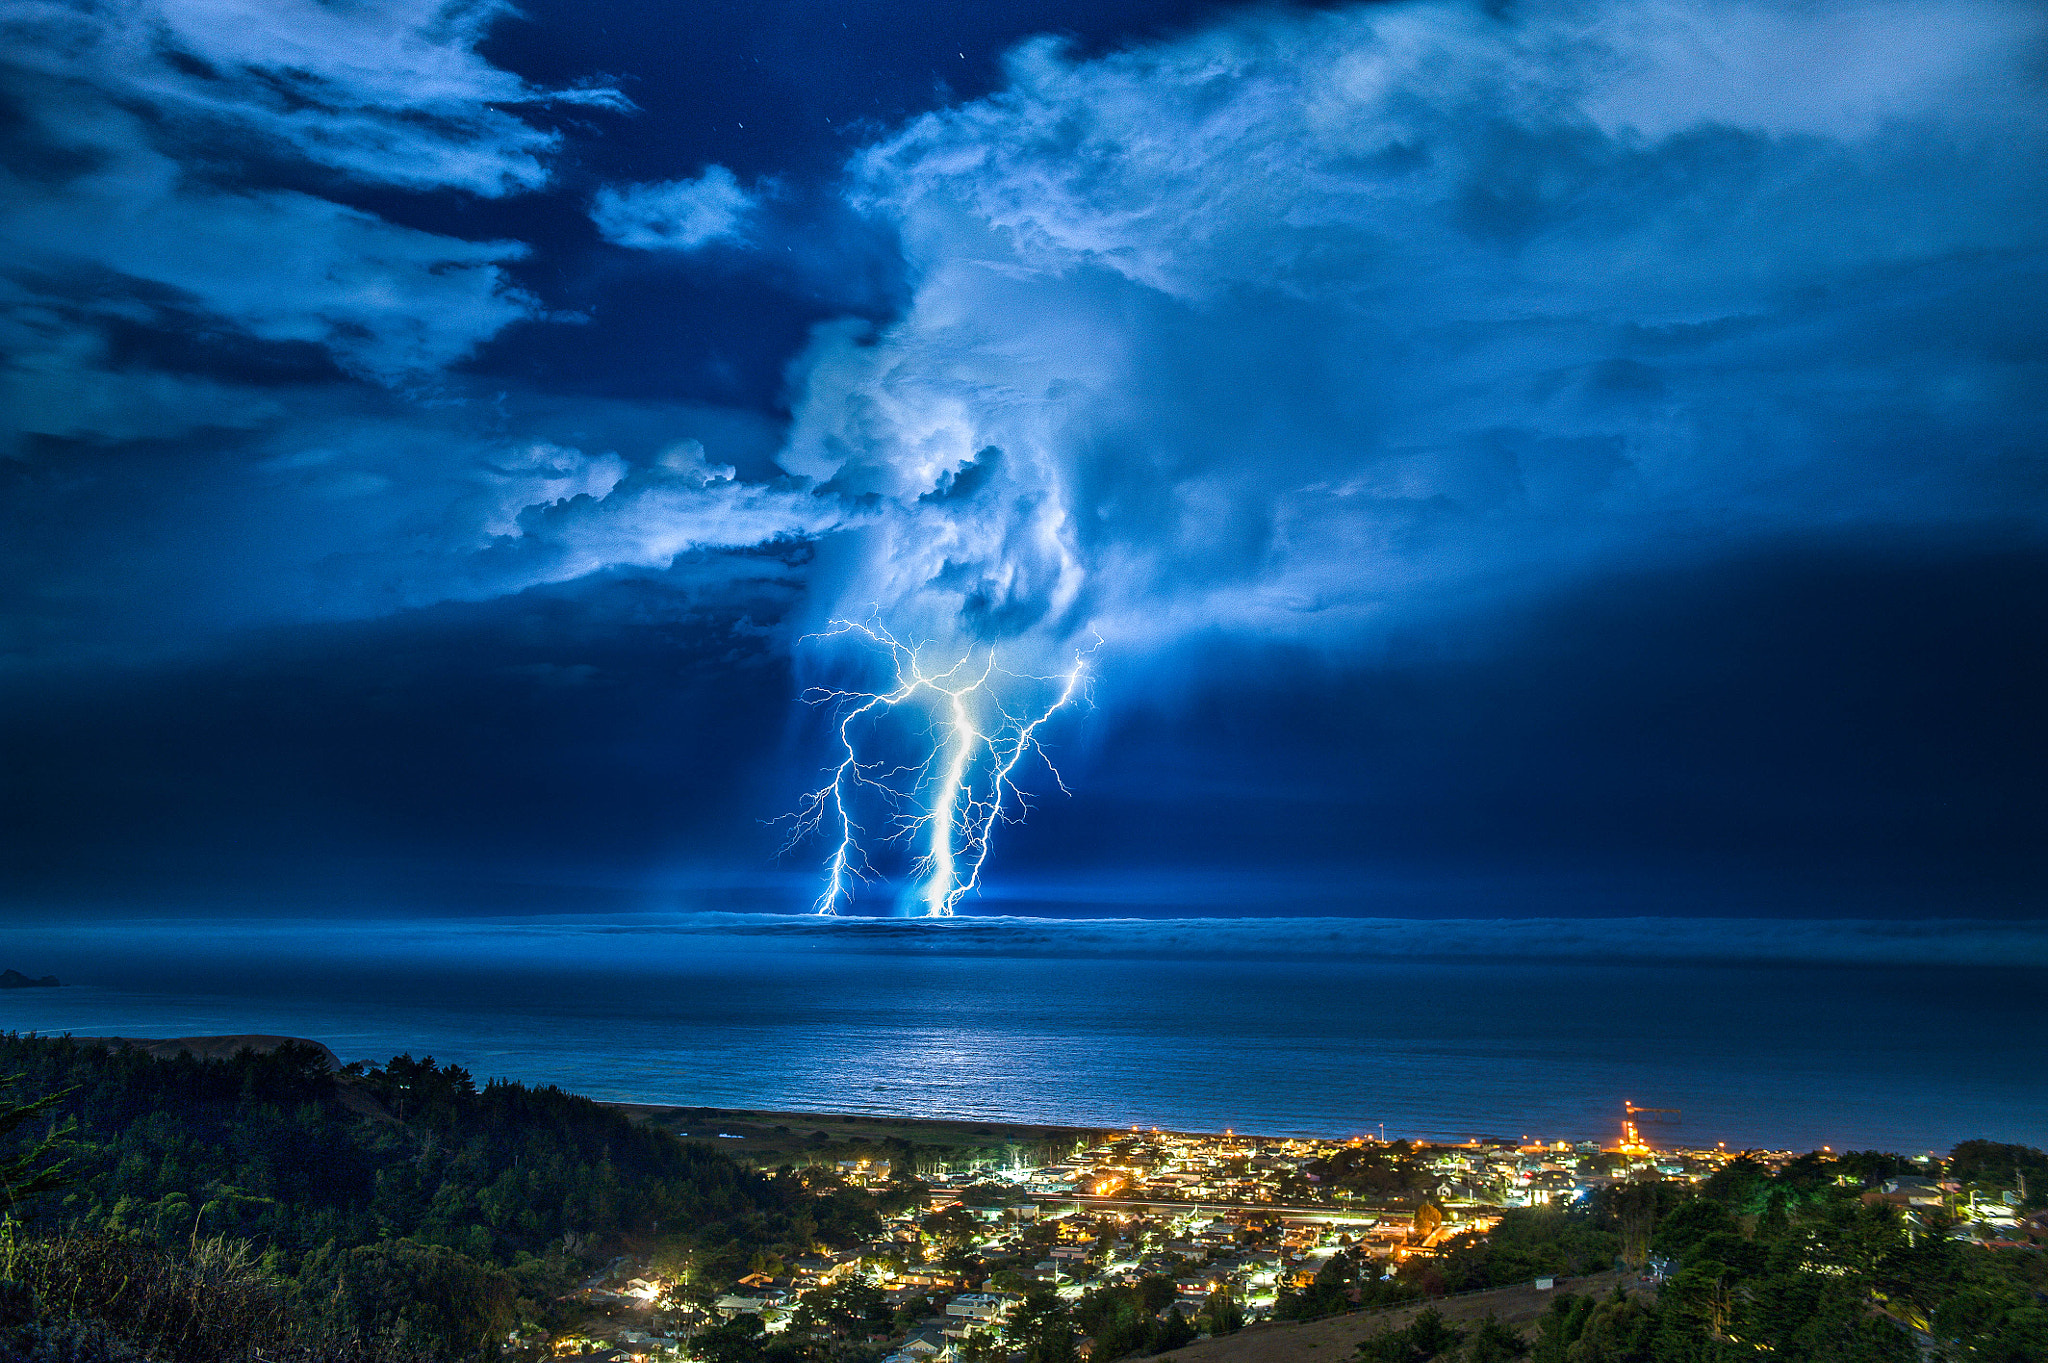 Photograph Lightning Strike over the Pacific. by Craig Hudson on 500px